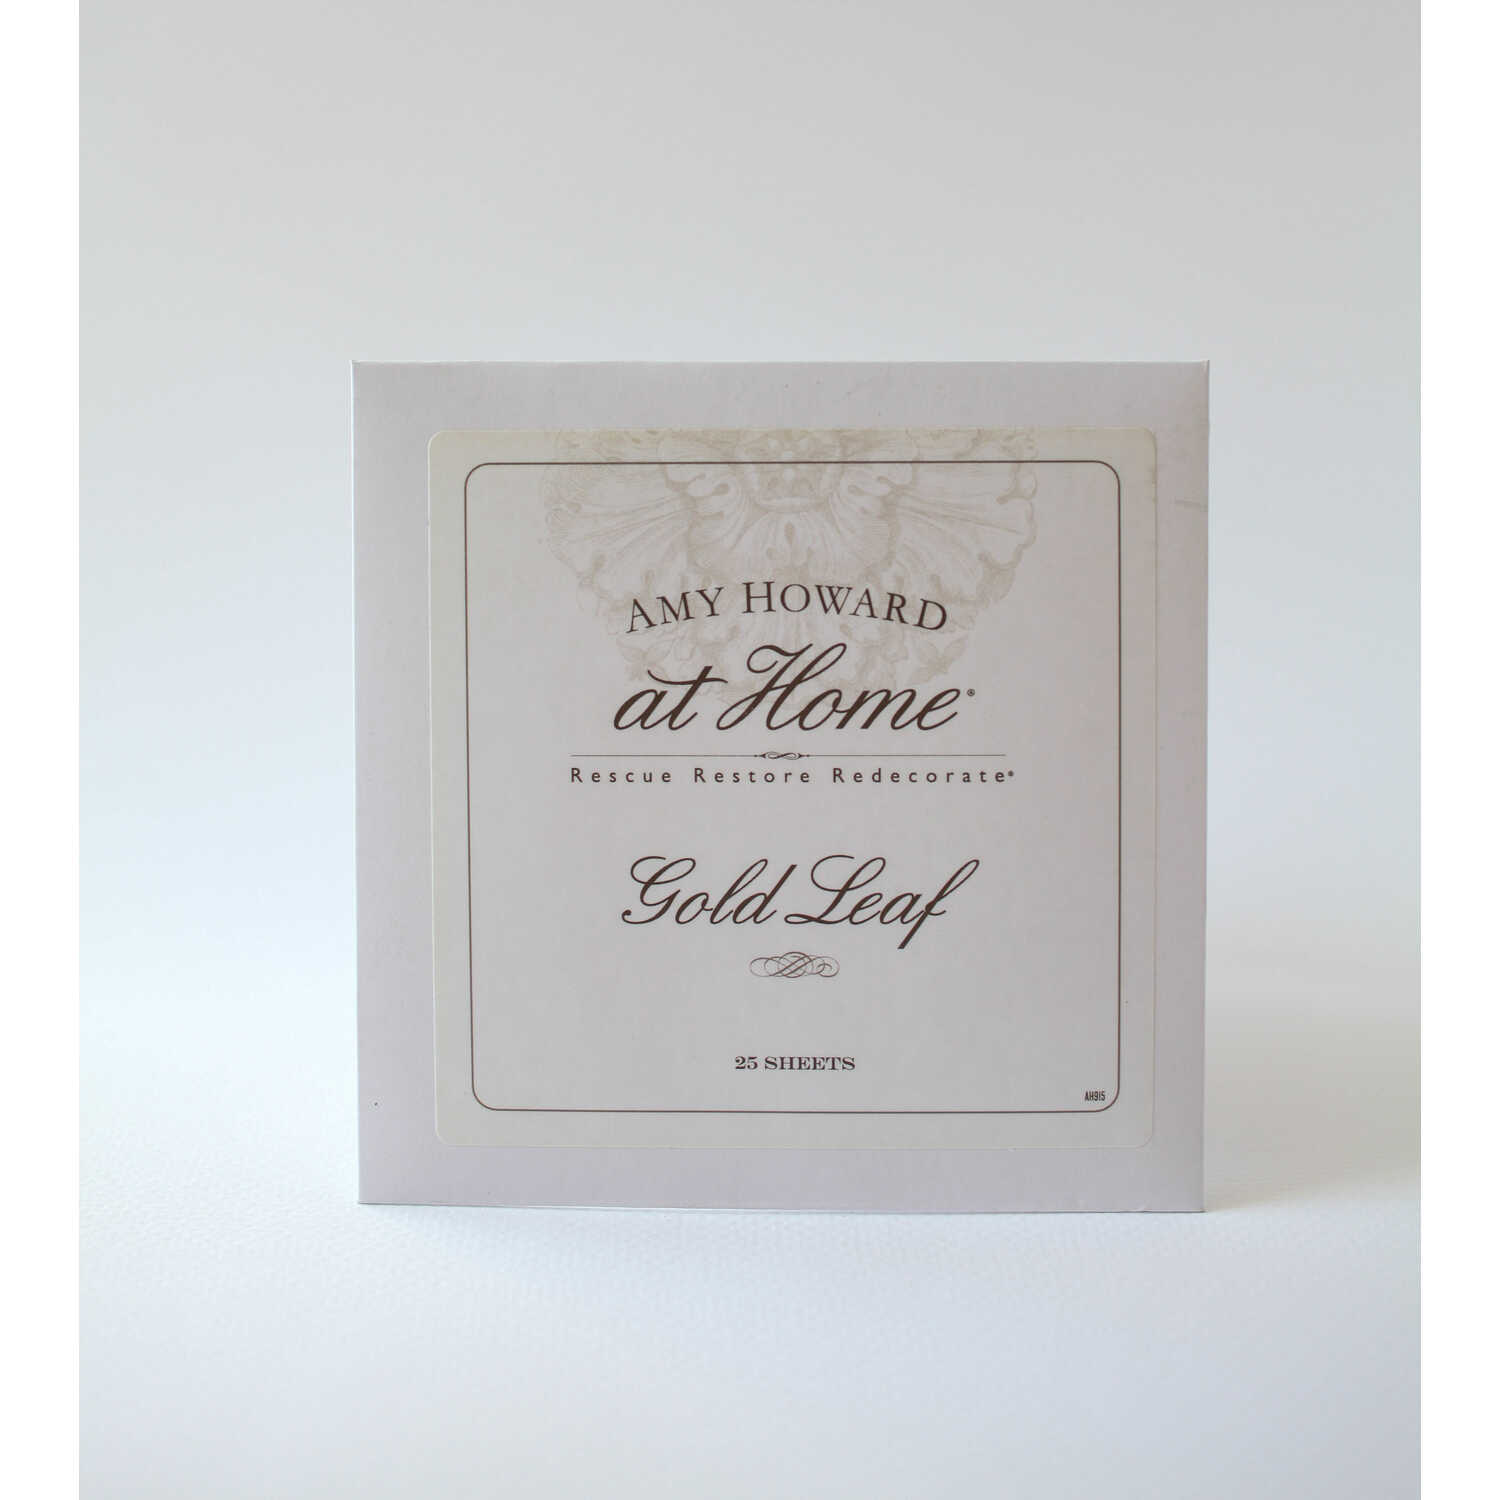 Amy Howard at Home  Gold  Gold Leaf